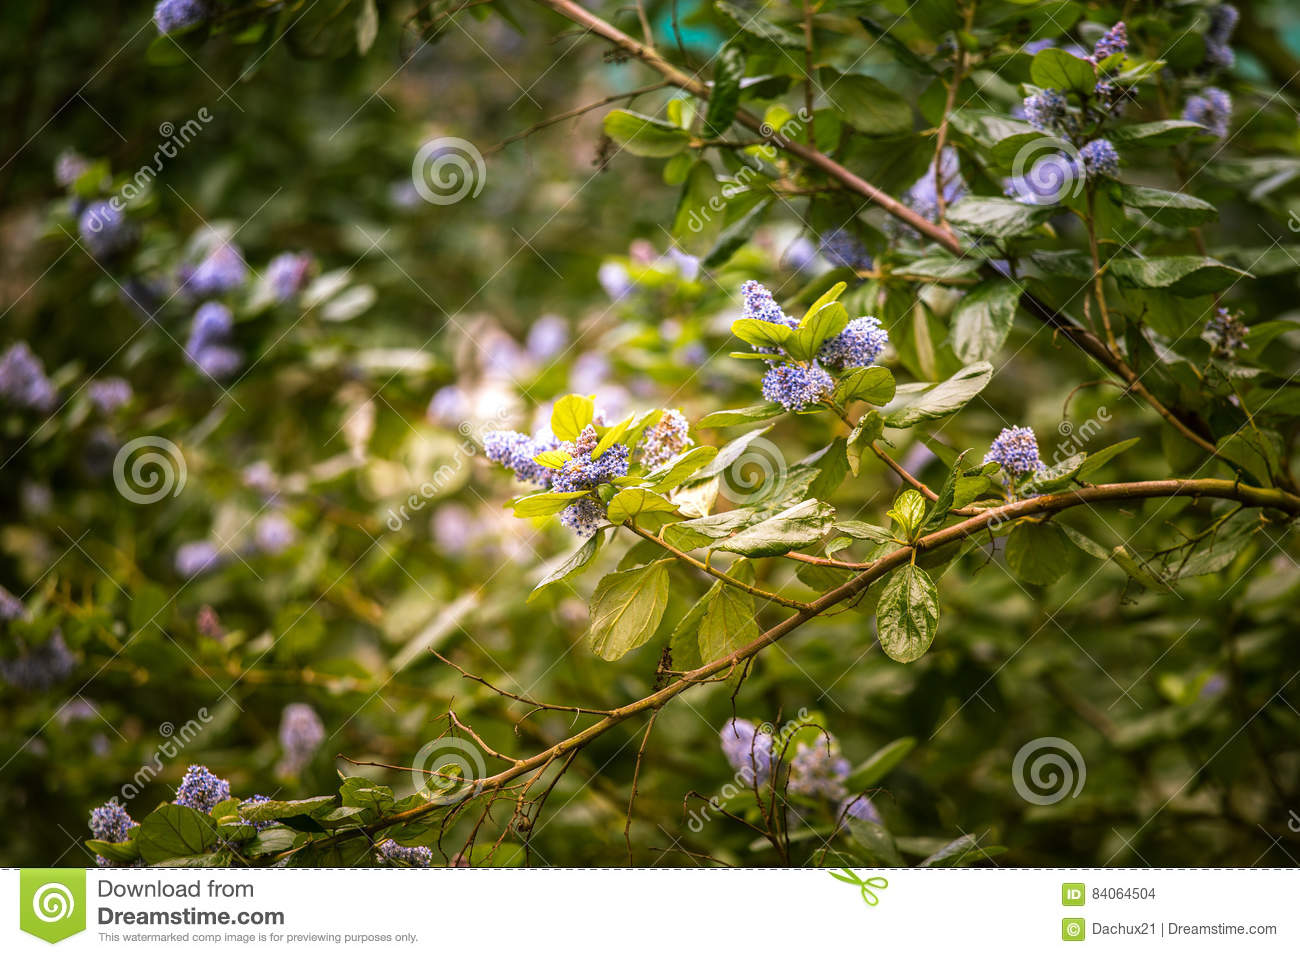 belles fleurs bleues dans l 39 habitat naturel photo stock image du arbre botanique 84064504. Black Bedroom Furniture Sets. Home Design Ideas